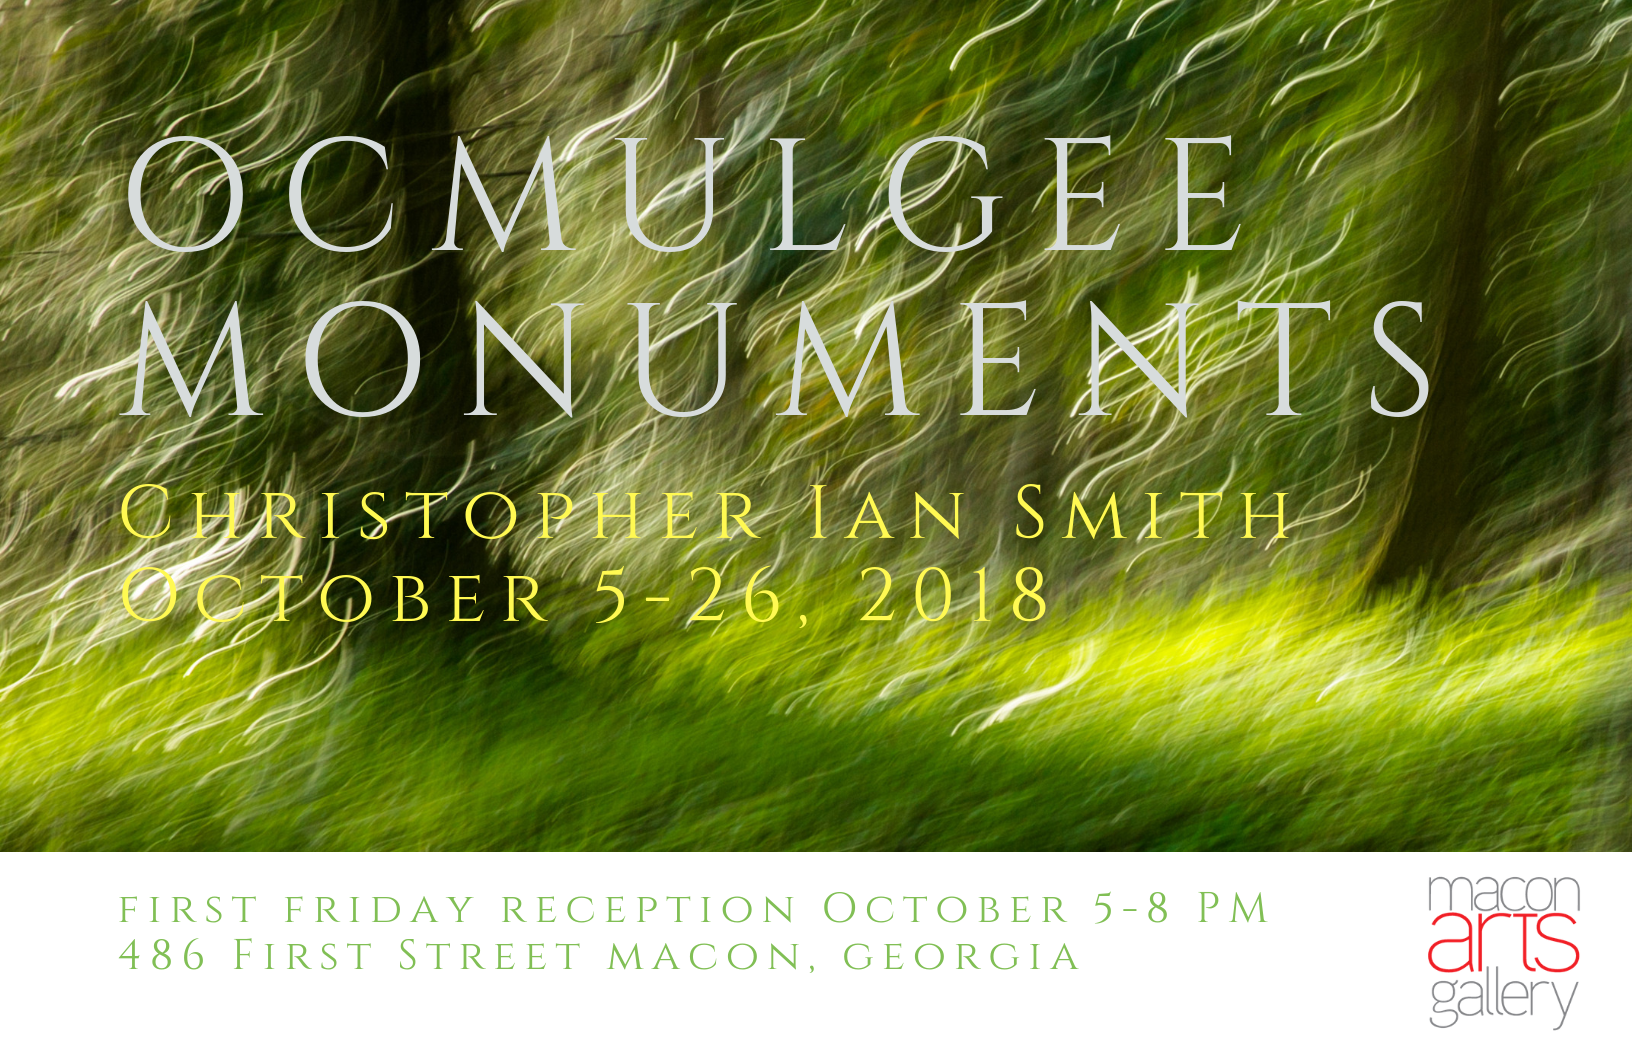 Ocmulgee Monuments by Christopher Ian Smith